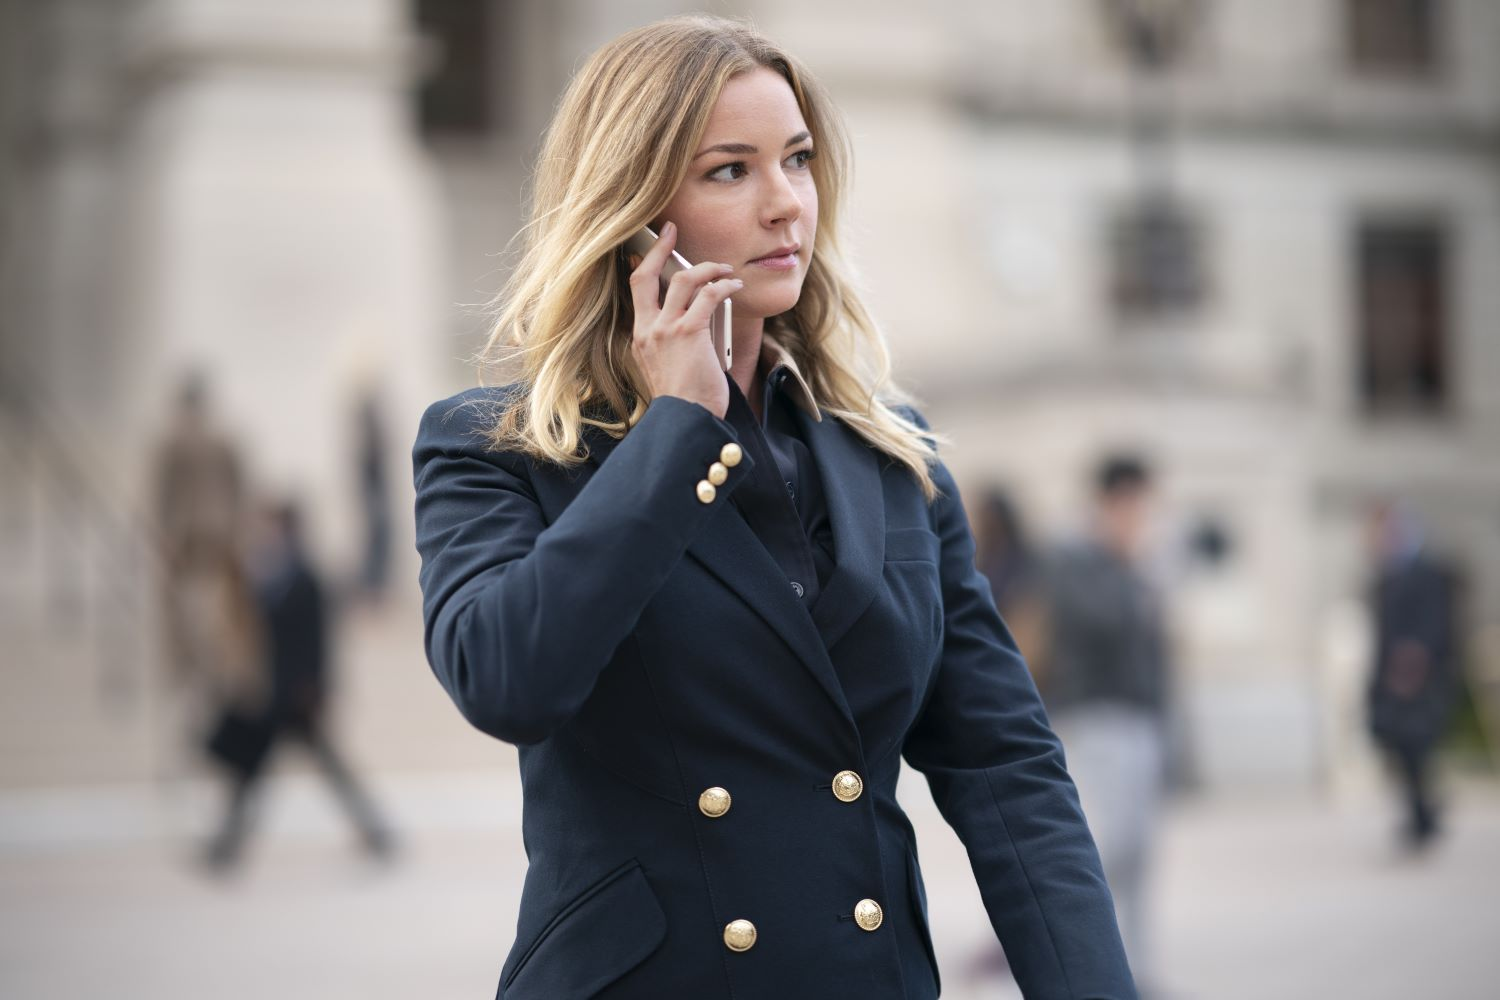 Emily VanCamp in 'The Falcon and the Winter Soldier'